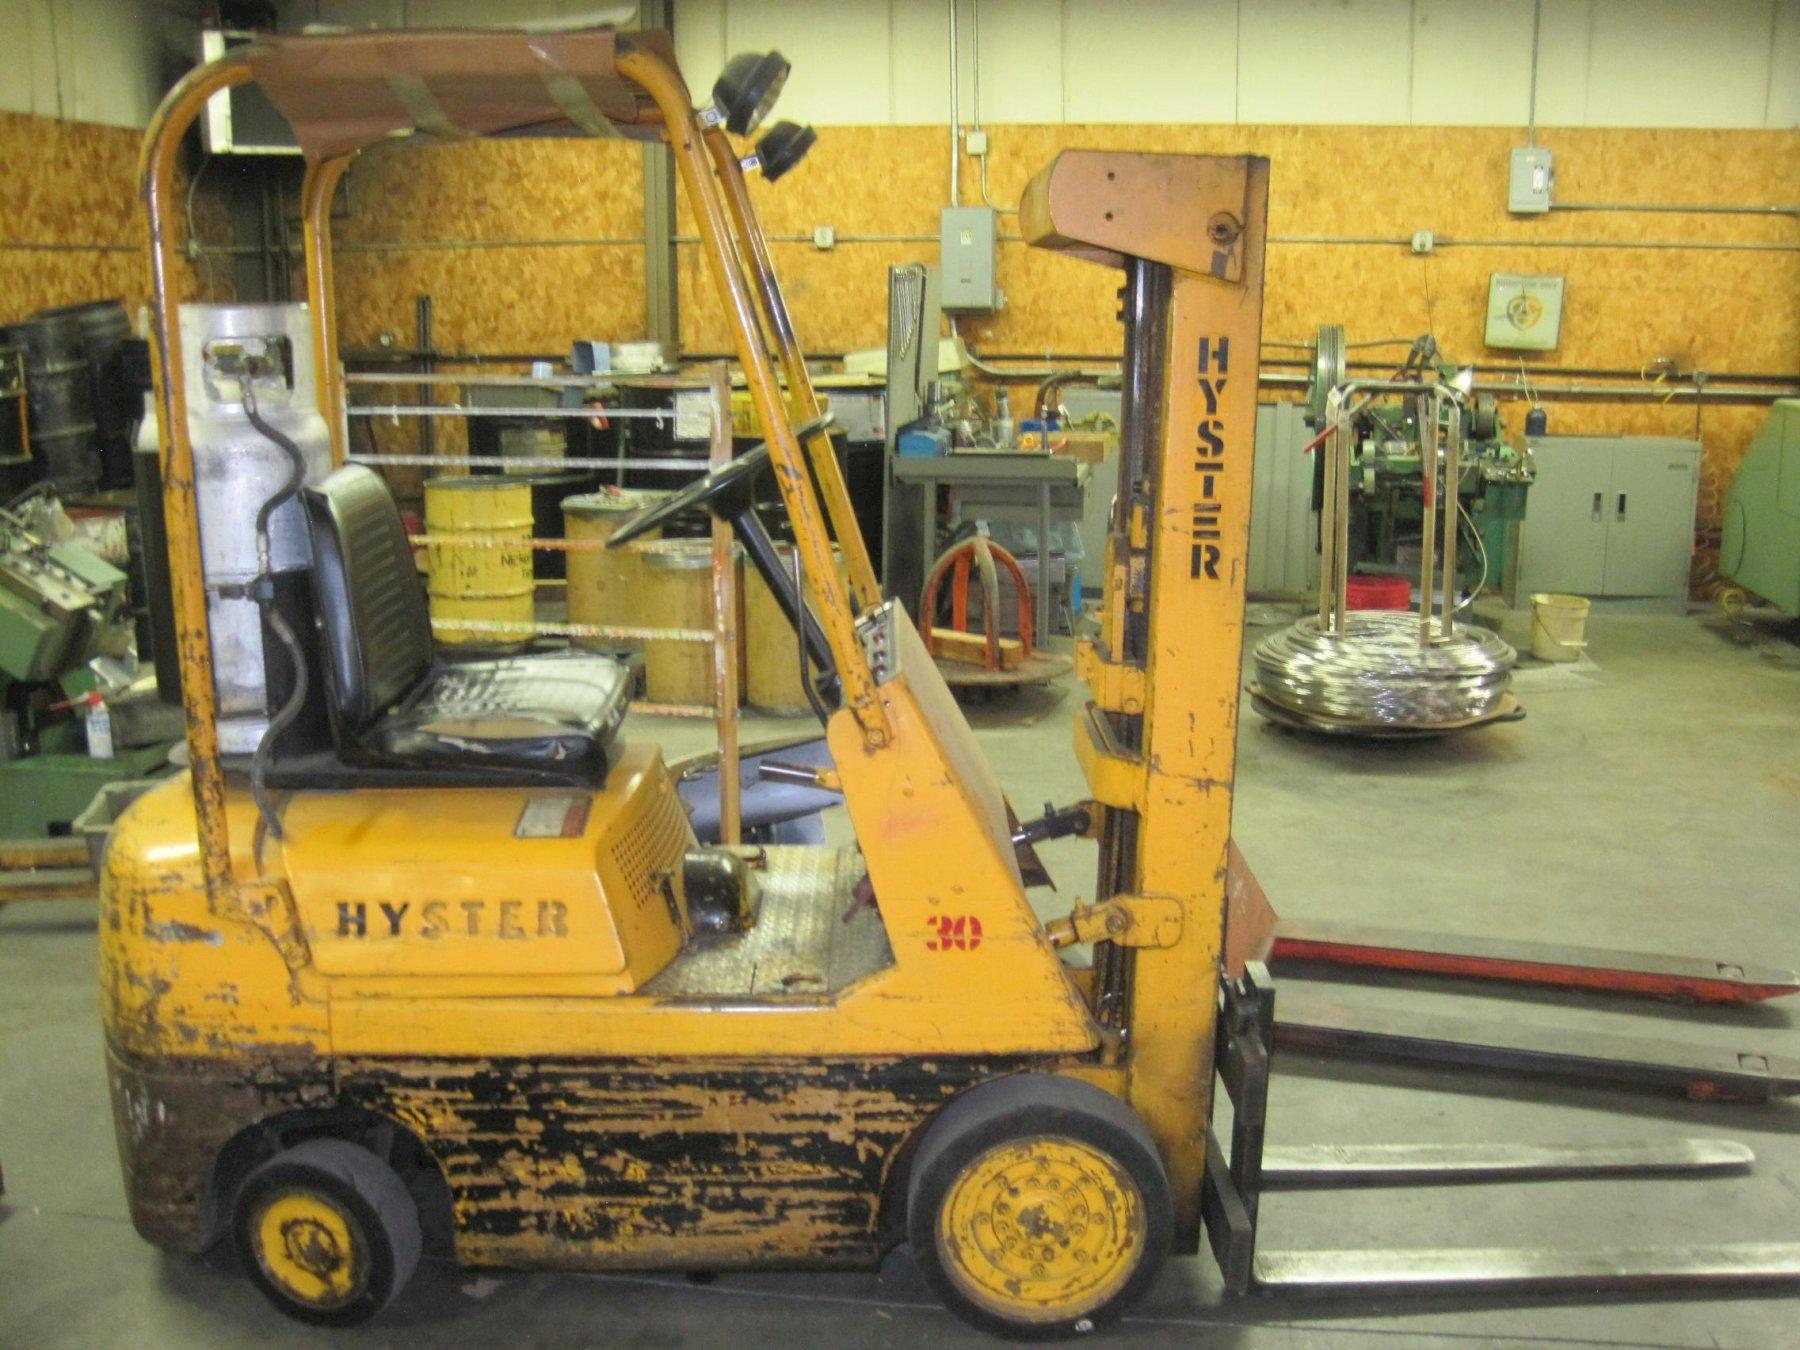 Hyster 3,000 lb Capacity Propane Forklift Model S30A